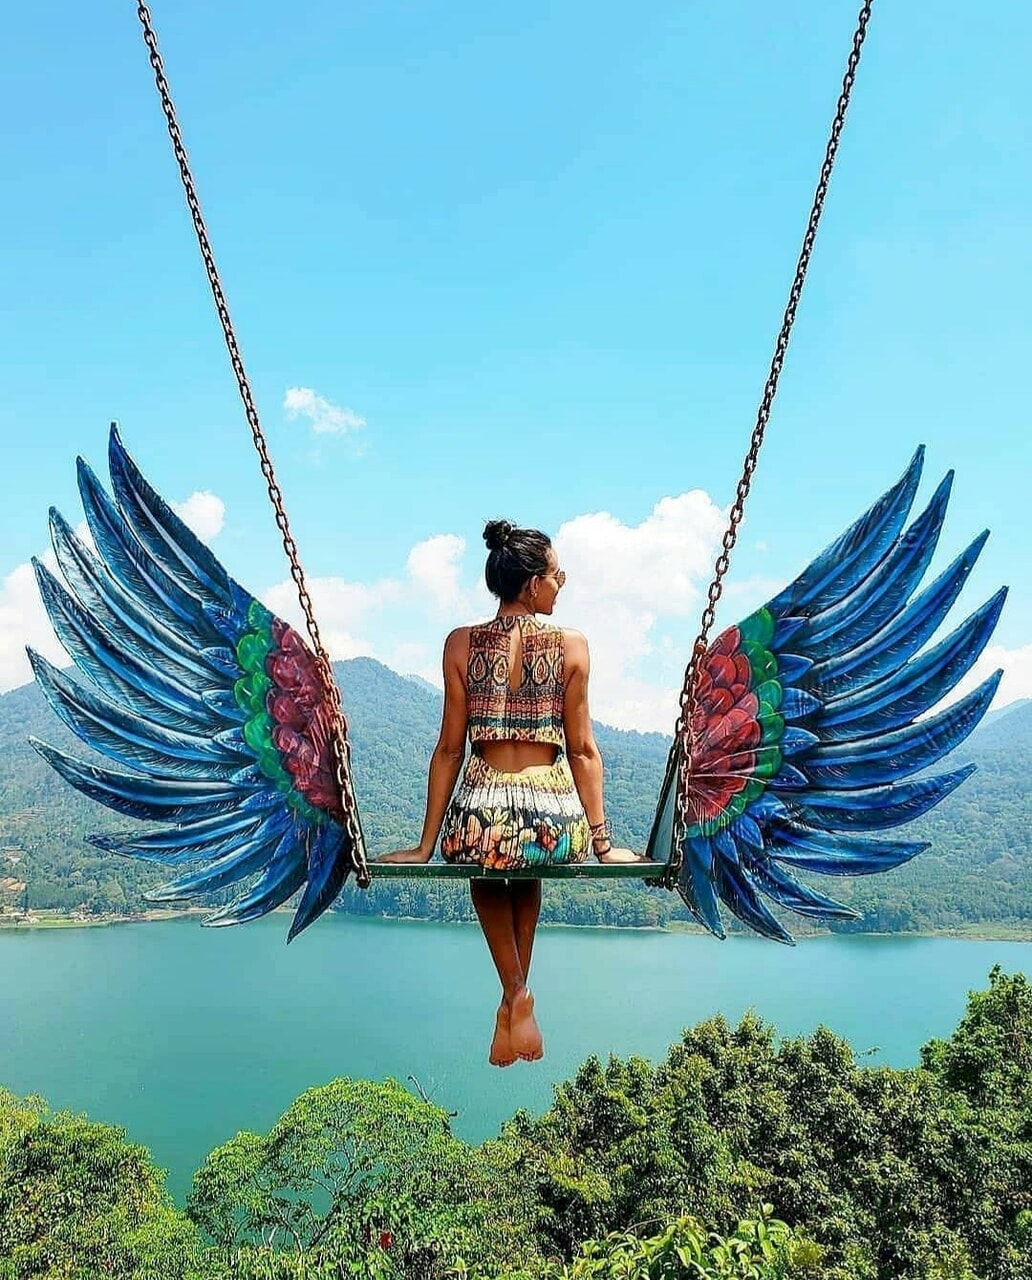 wings and swing image